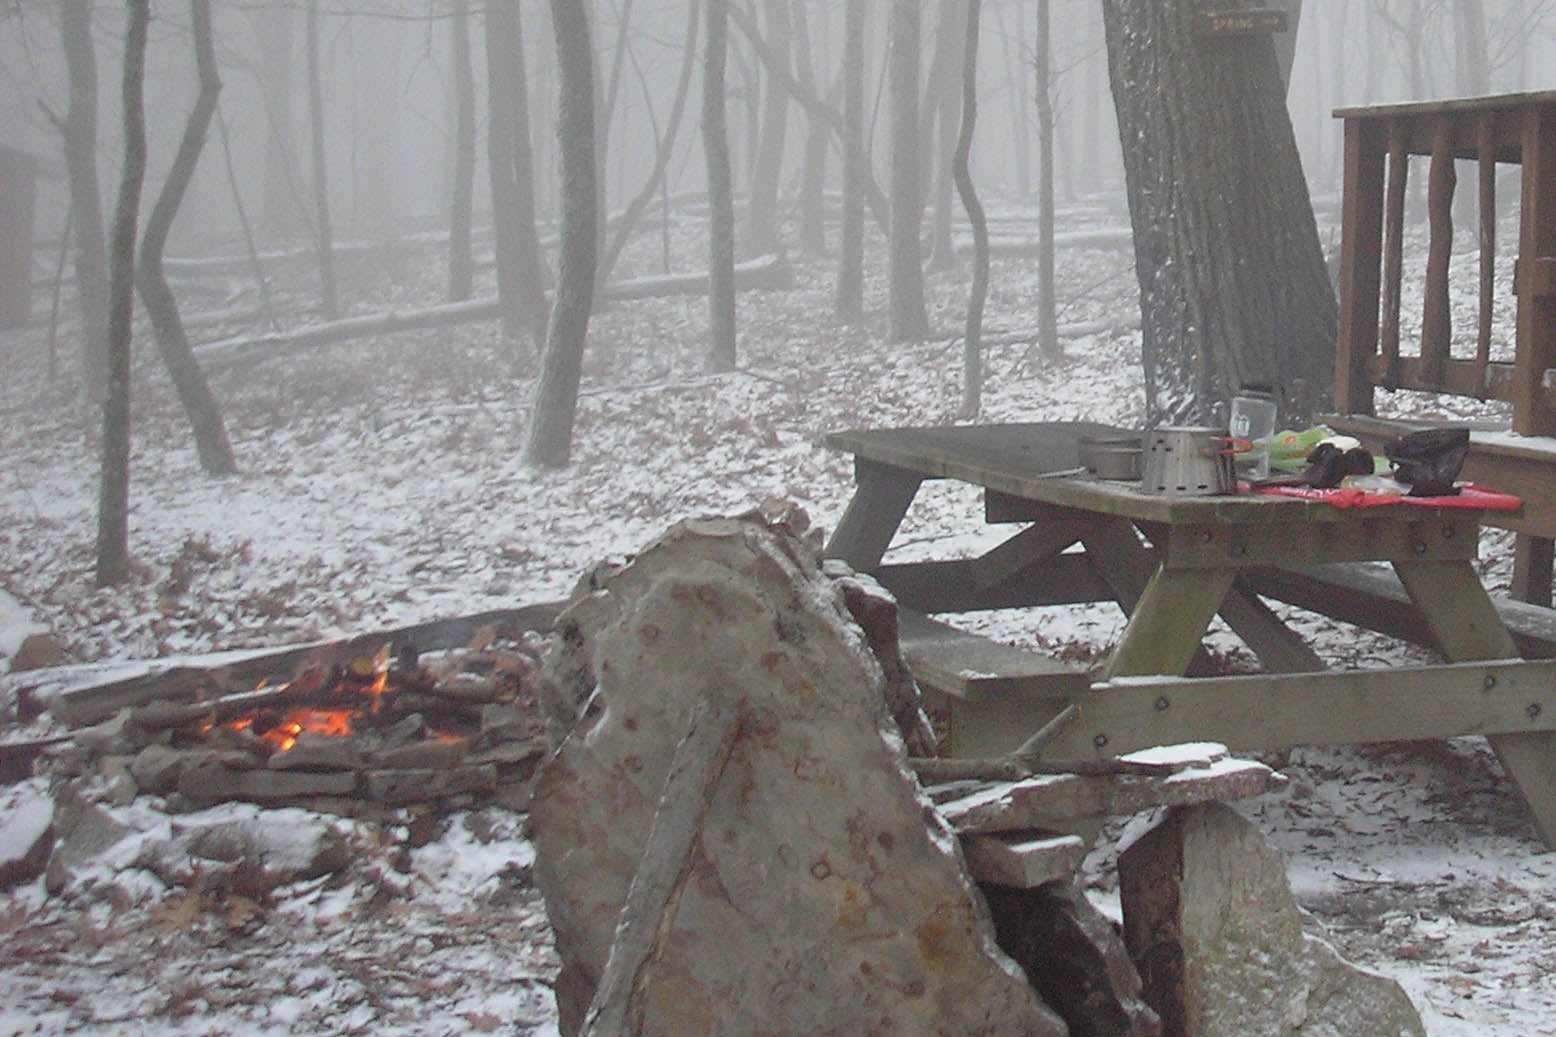 Gregory Marsh cooking a hot meal before hunkering down for a snow storm at Shockeys Knob Shelter on the Tuscarora Trail in West Virginia.